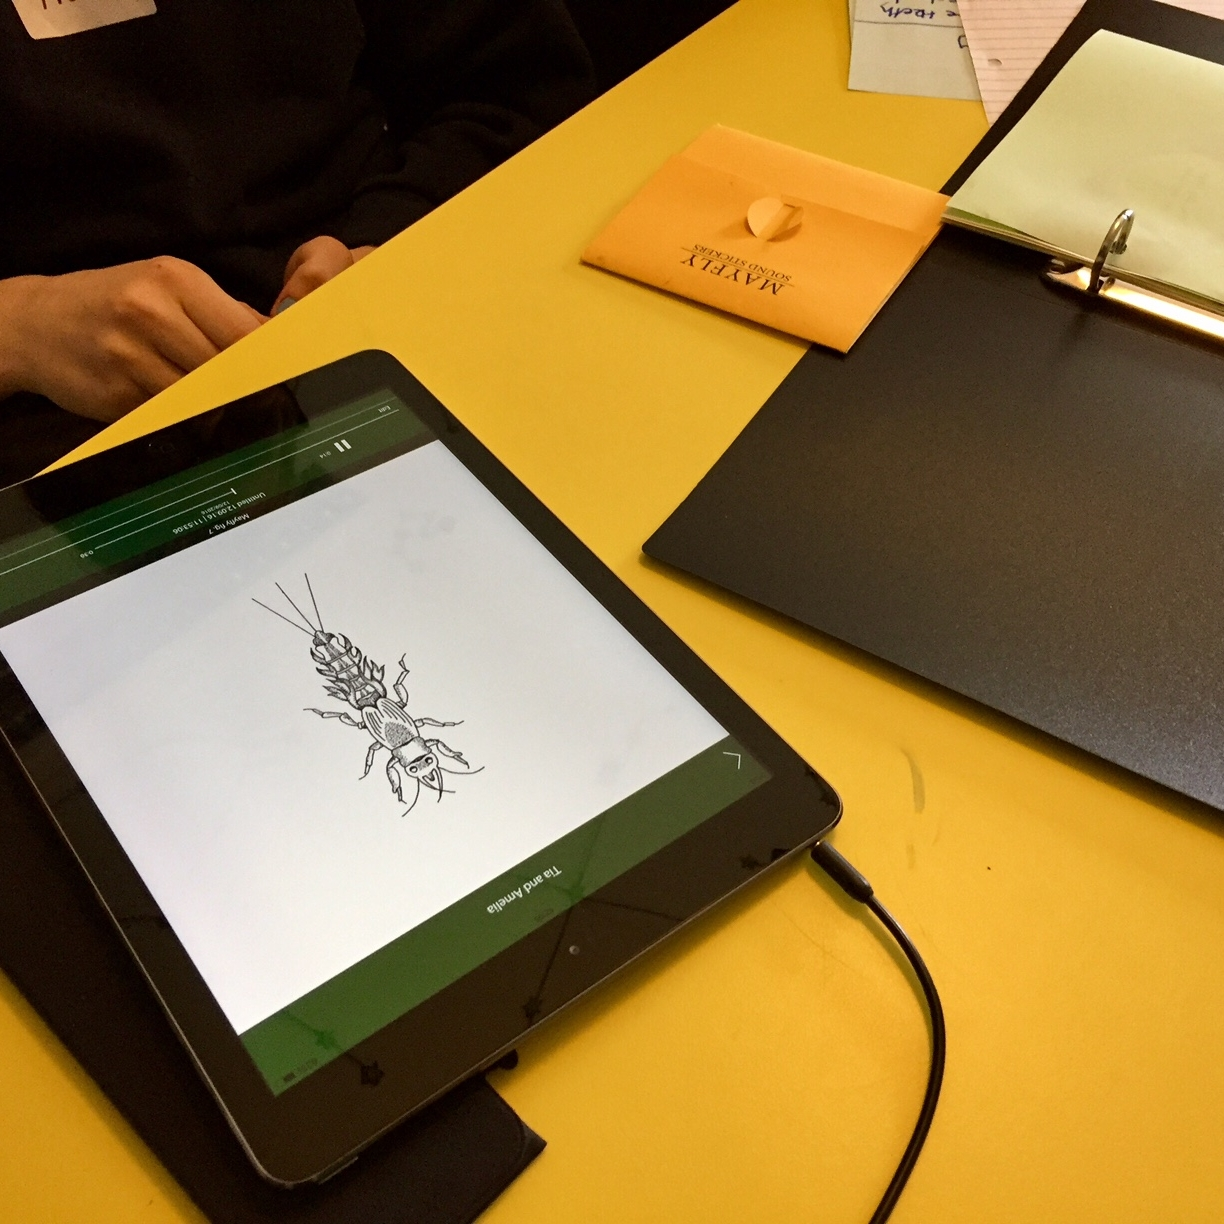 Learning Aid - 'My students really enjoyed the multisensory approach to learning.'